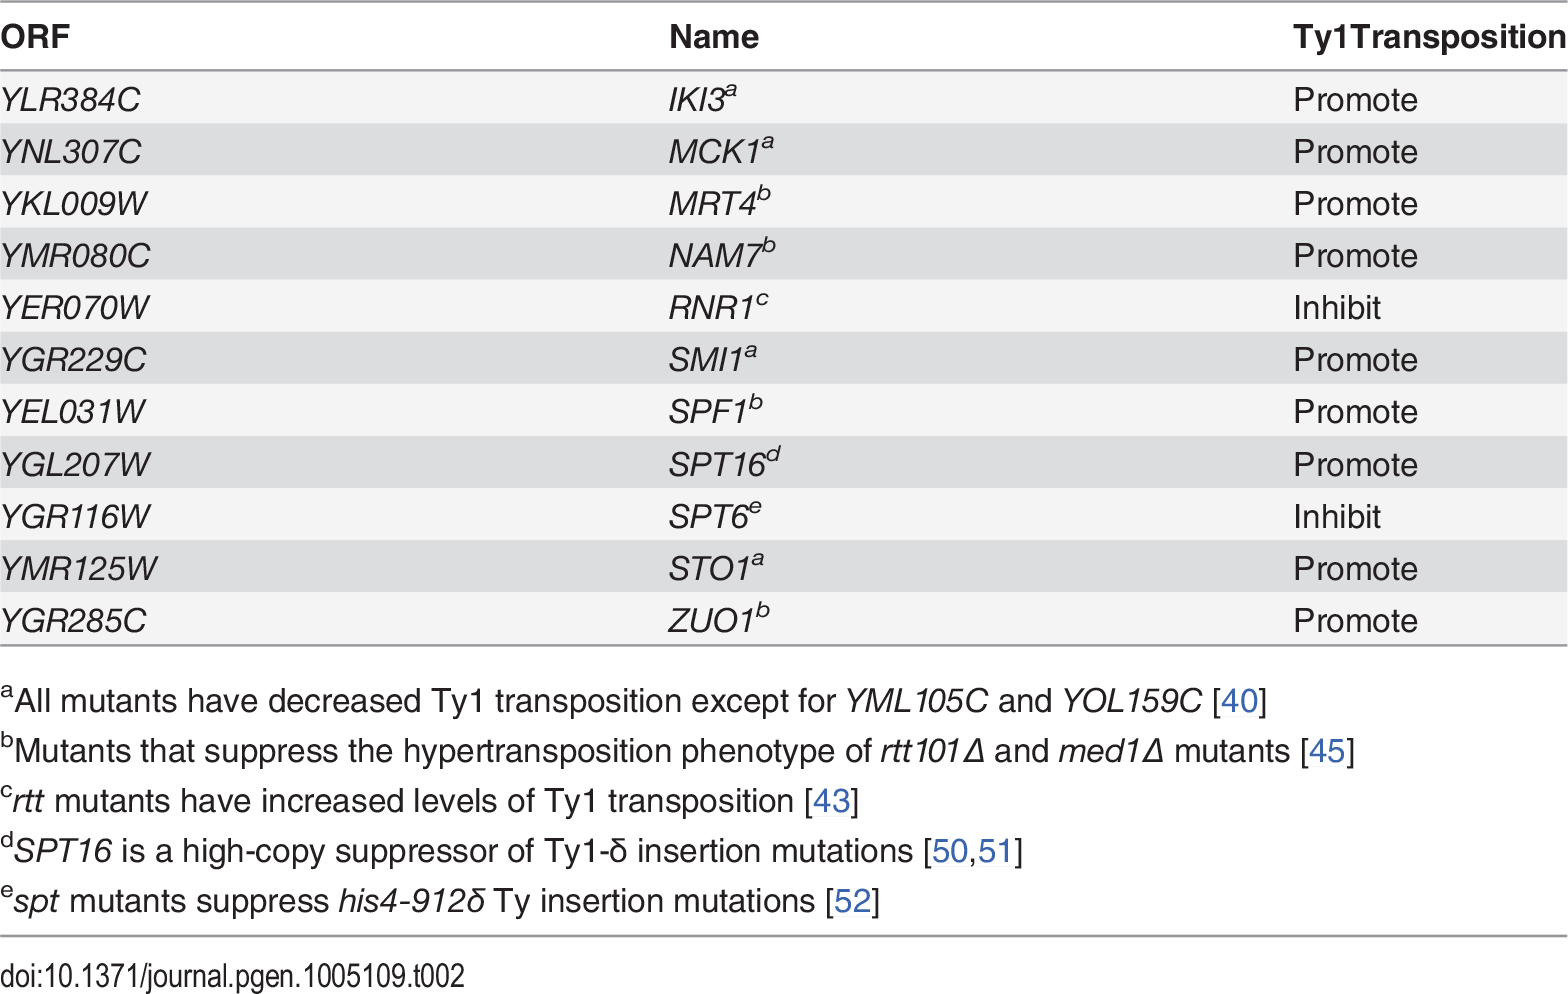 Genes identified in Esp1-13Myc mass spectrometry screen implicated in Ty1 transposition.